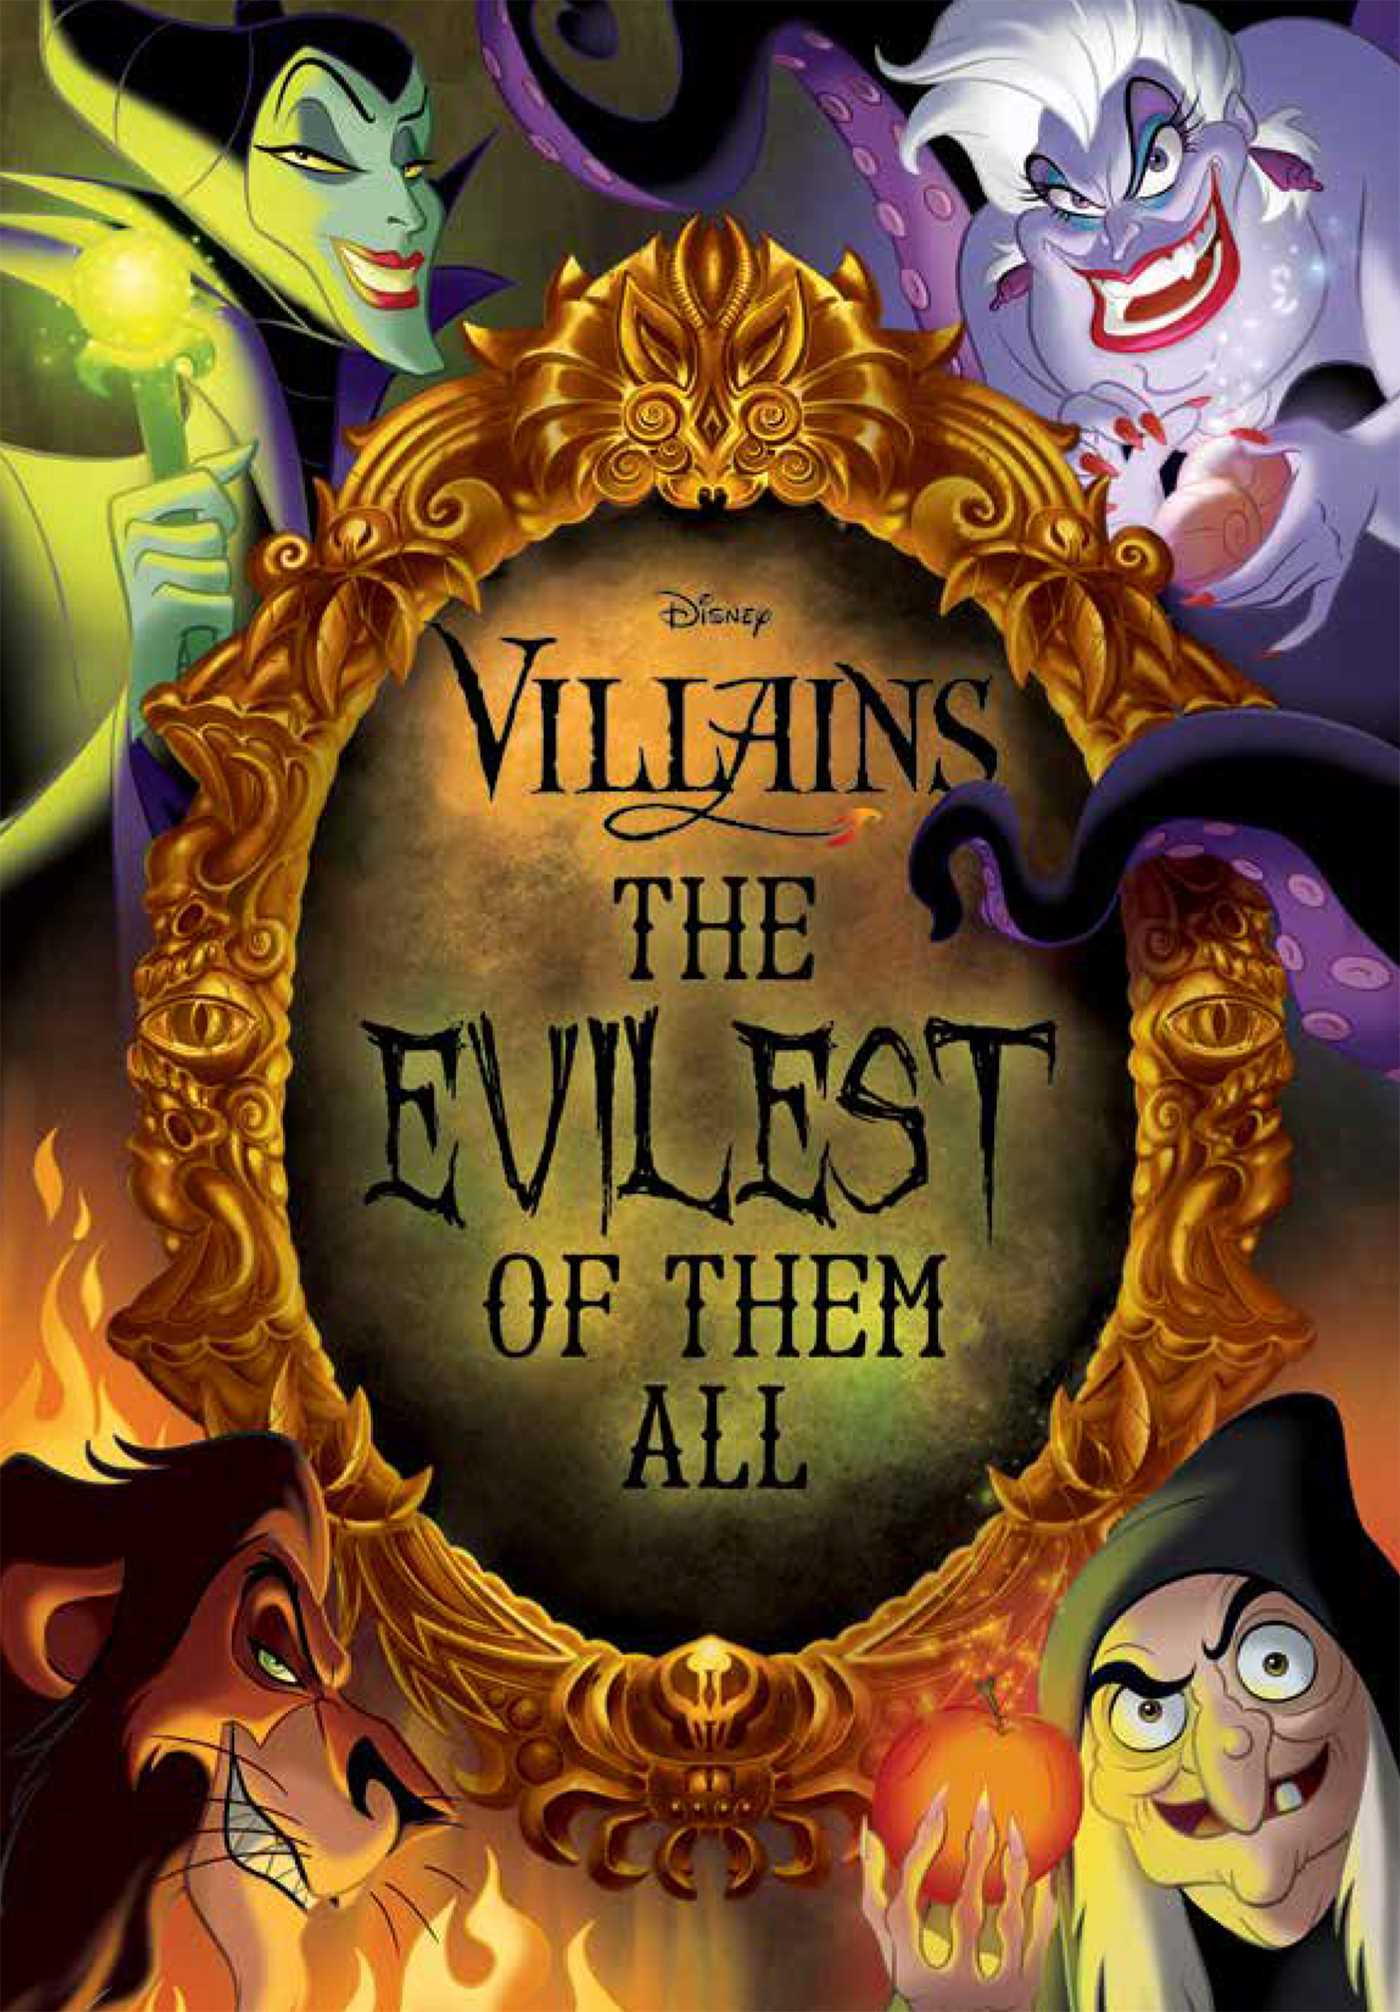 Disney villains the evilest of them all 9780794441609 hr